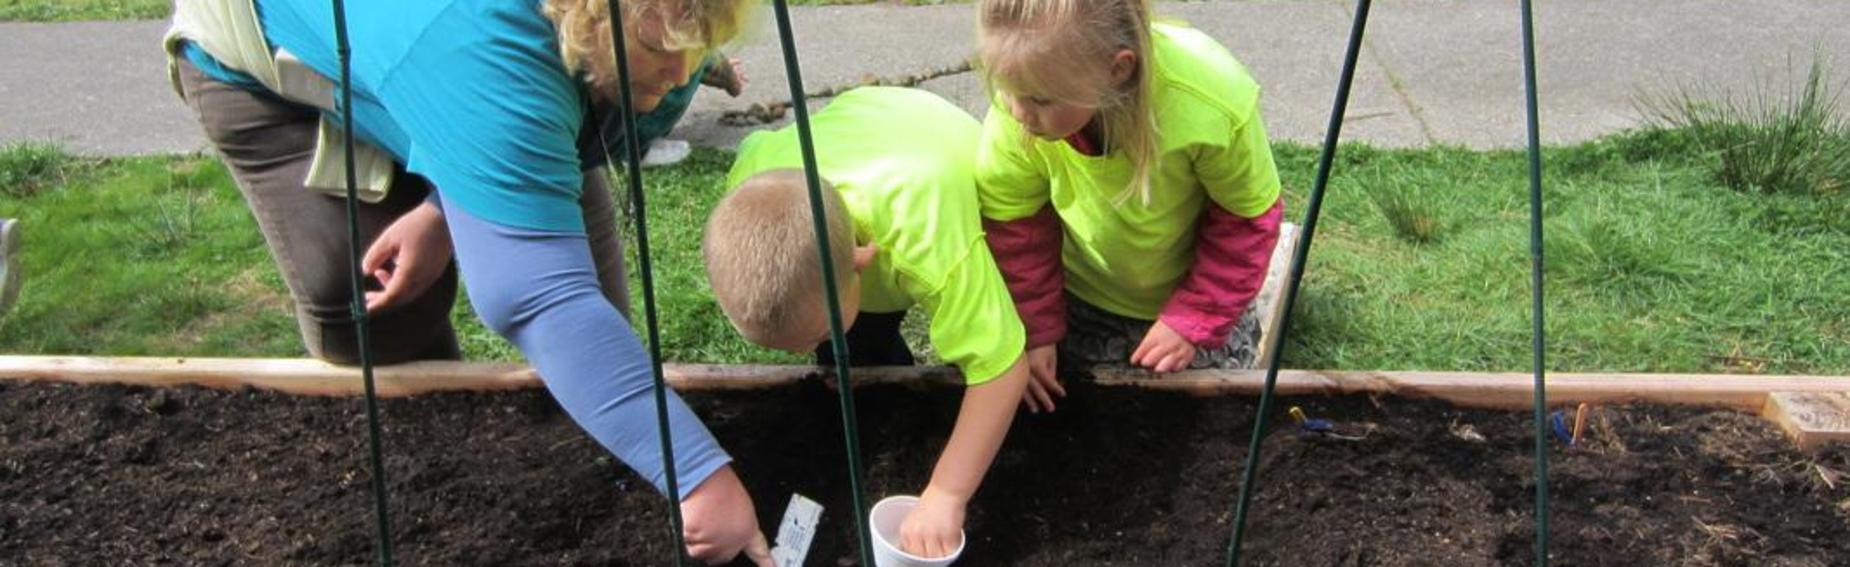 two children and an adult planting seeds in a raised garden bed.